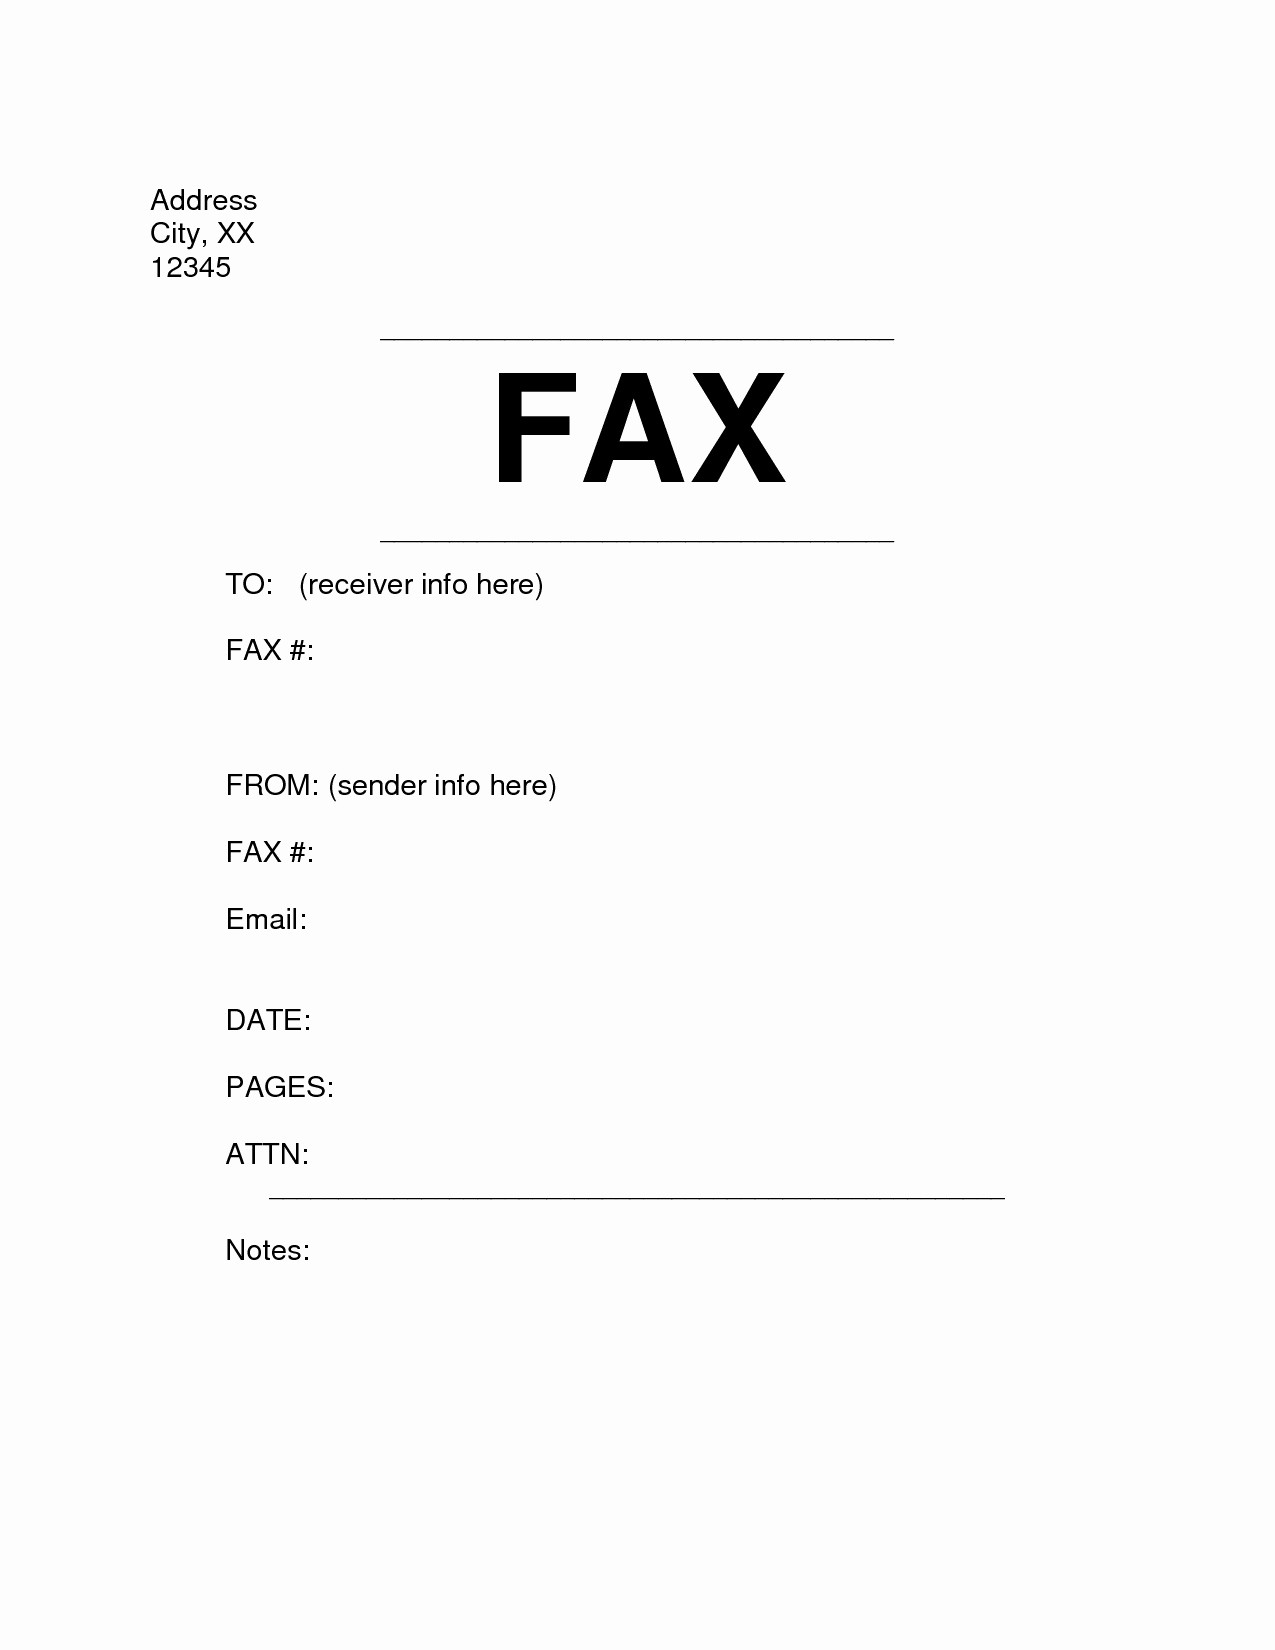 Resume Cover Page Template Free New Microsoft Fice Fax Cover Sheet Template